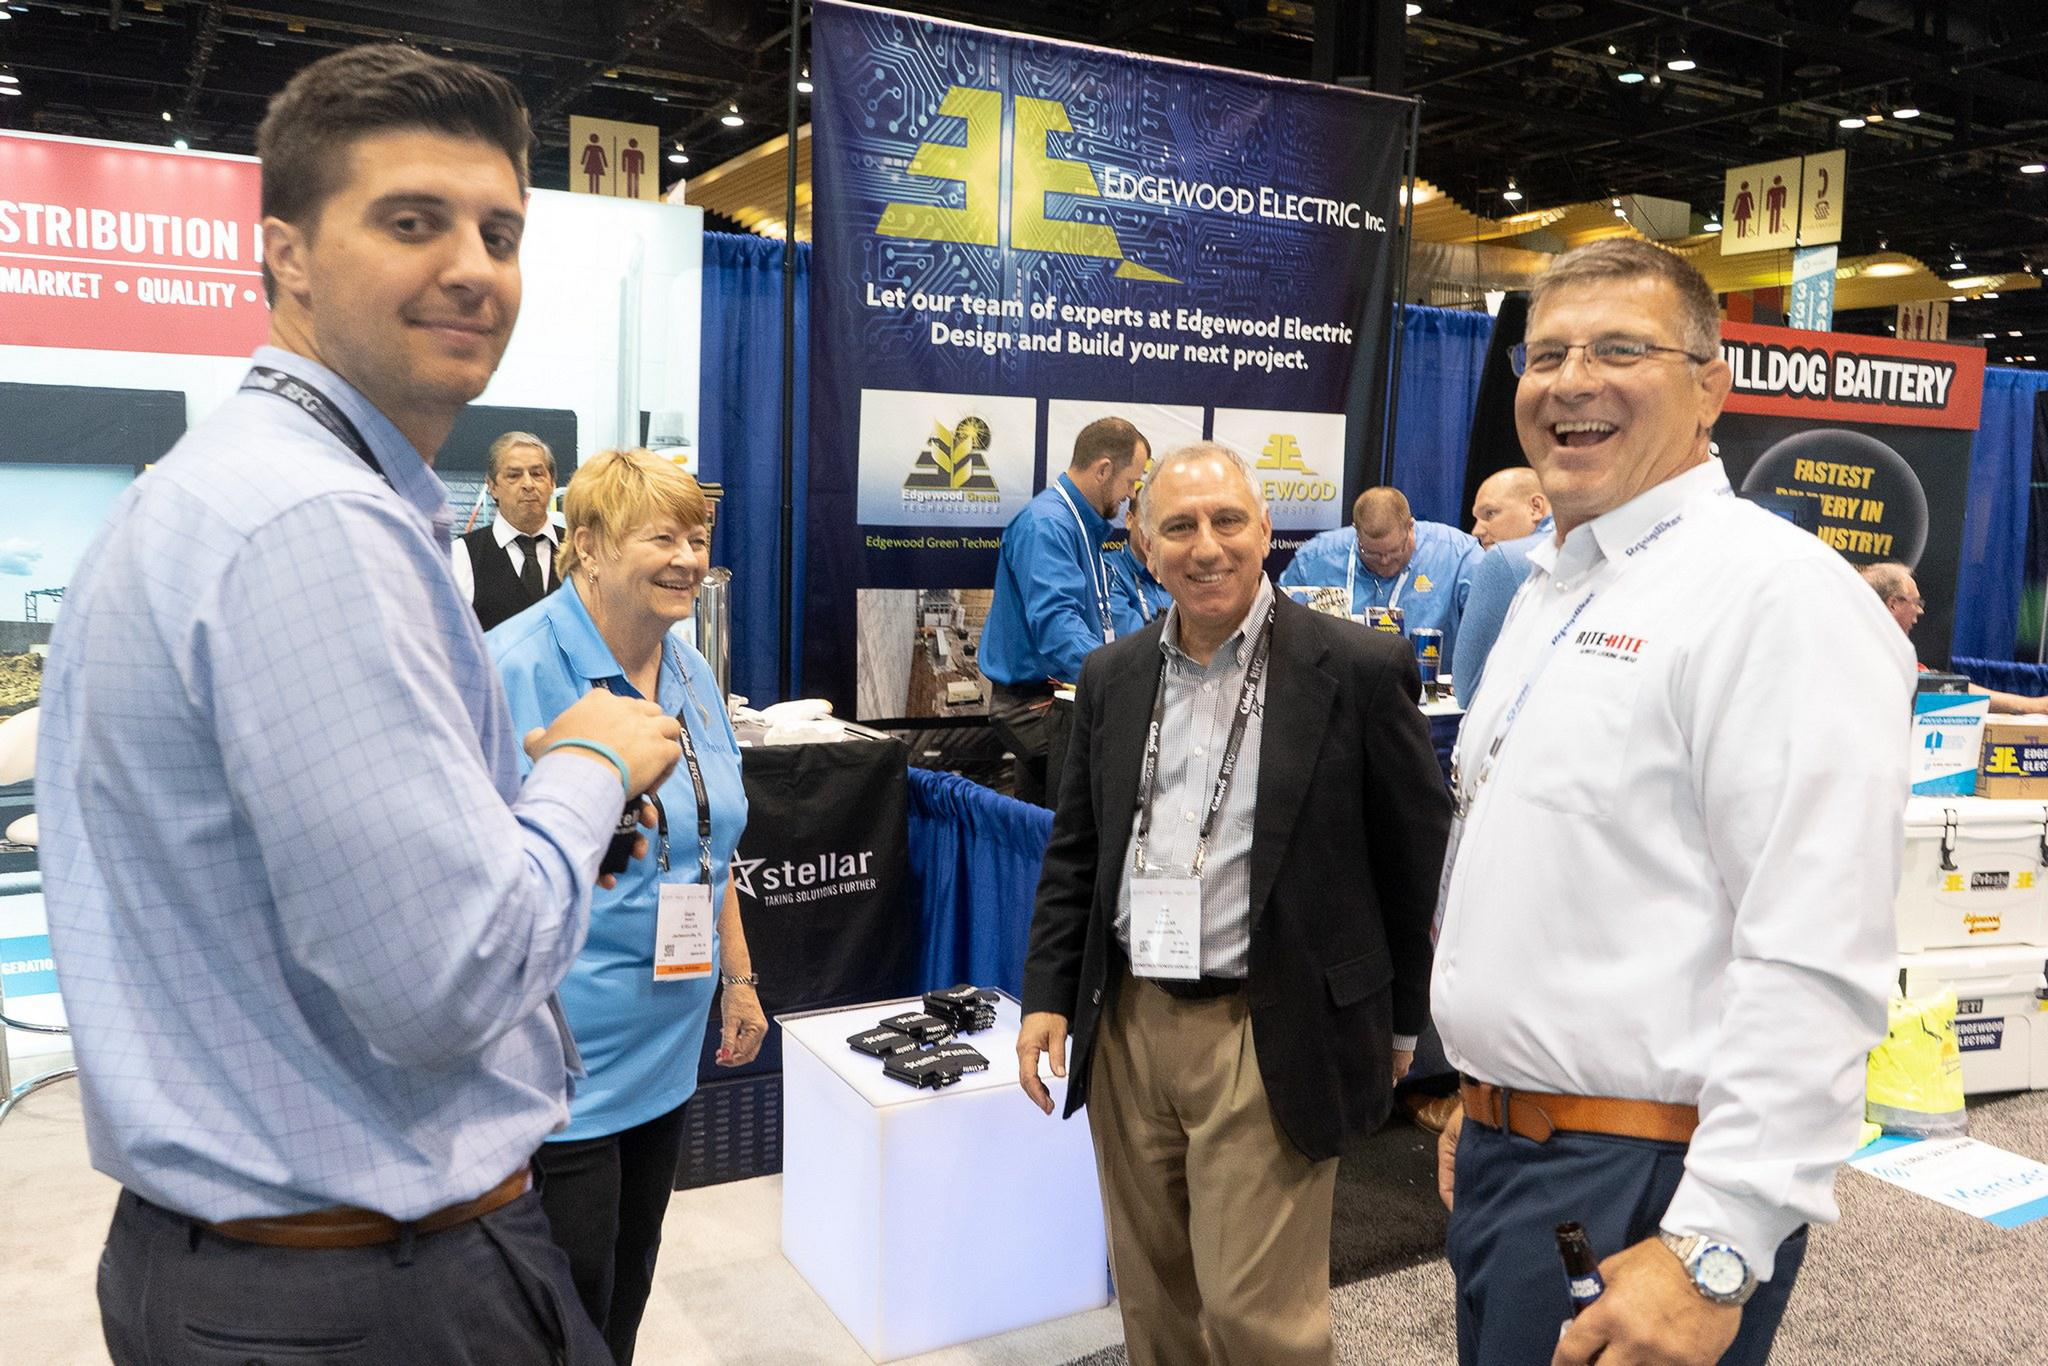 Global Cold Chain Expo promises innovative education